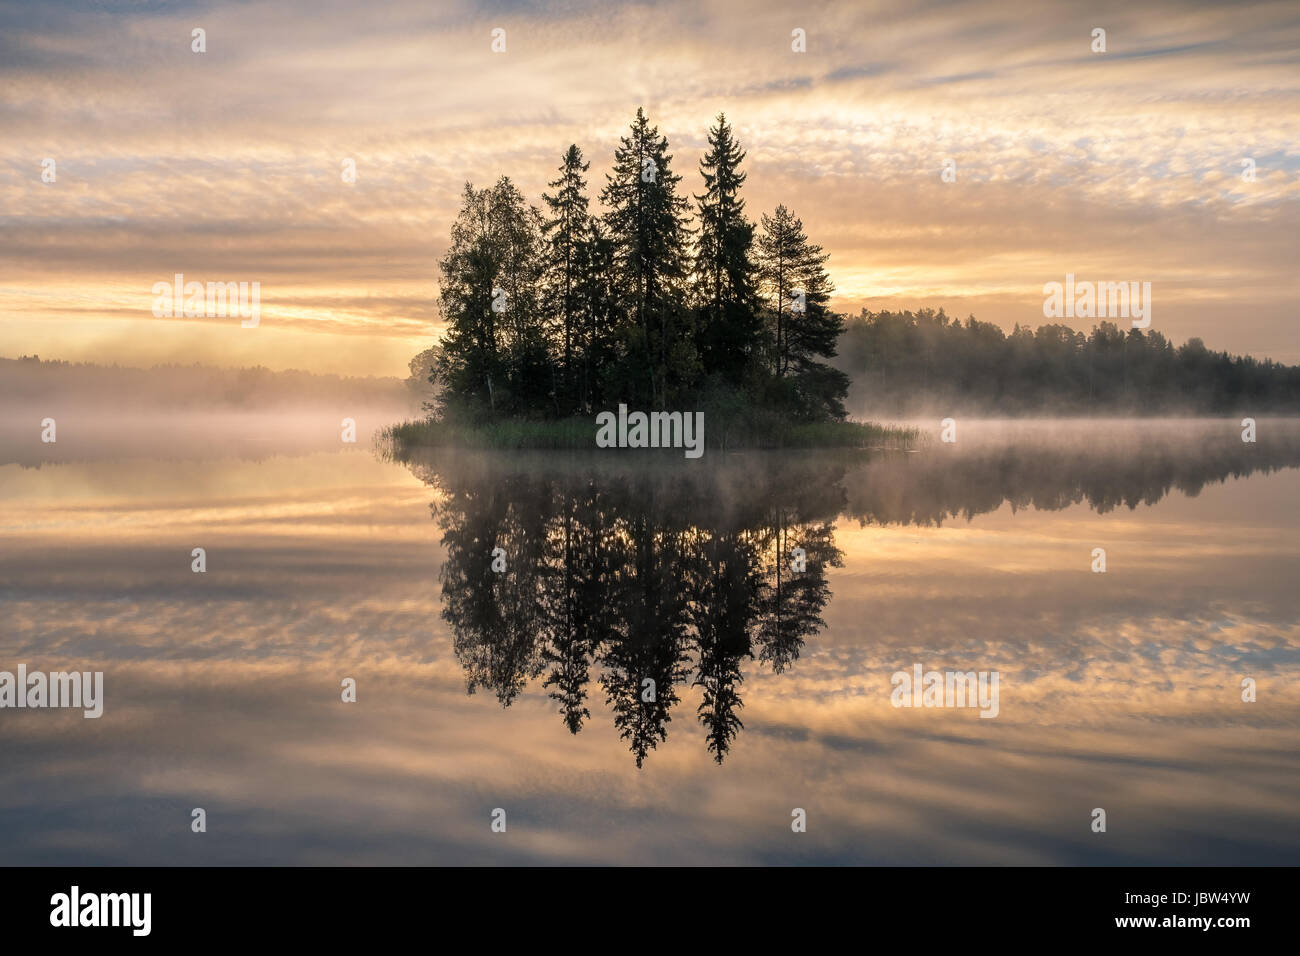 Scenic landscape with sunrise and idyllic island at early morning in Finland - Stock Image